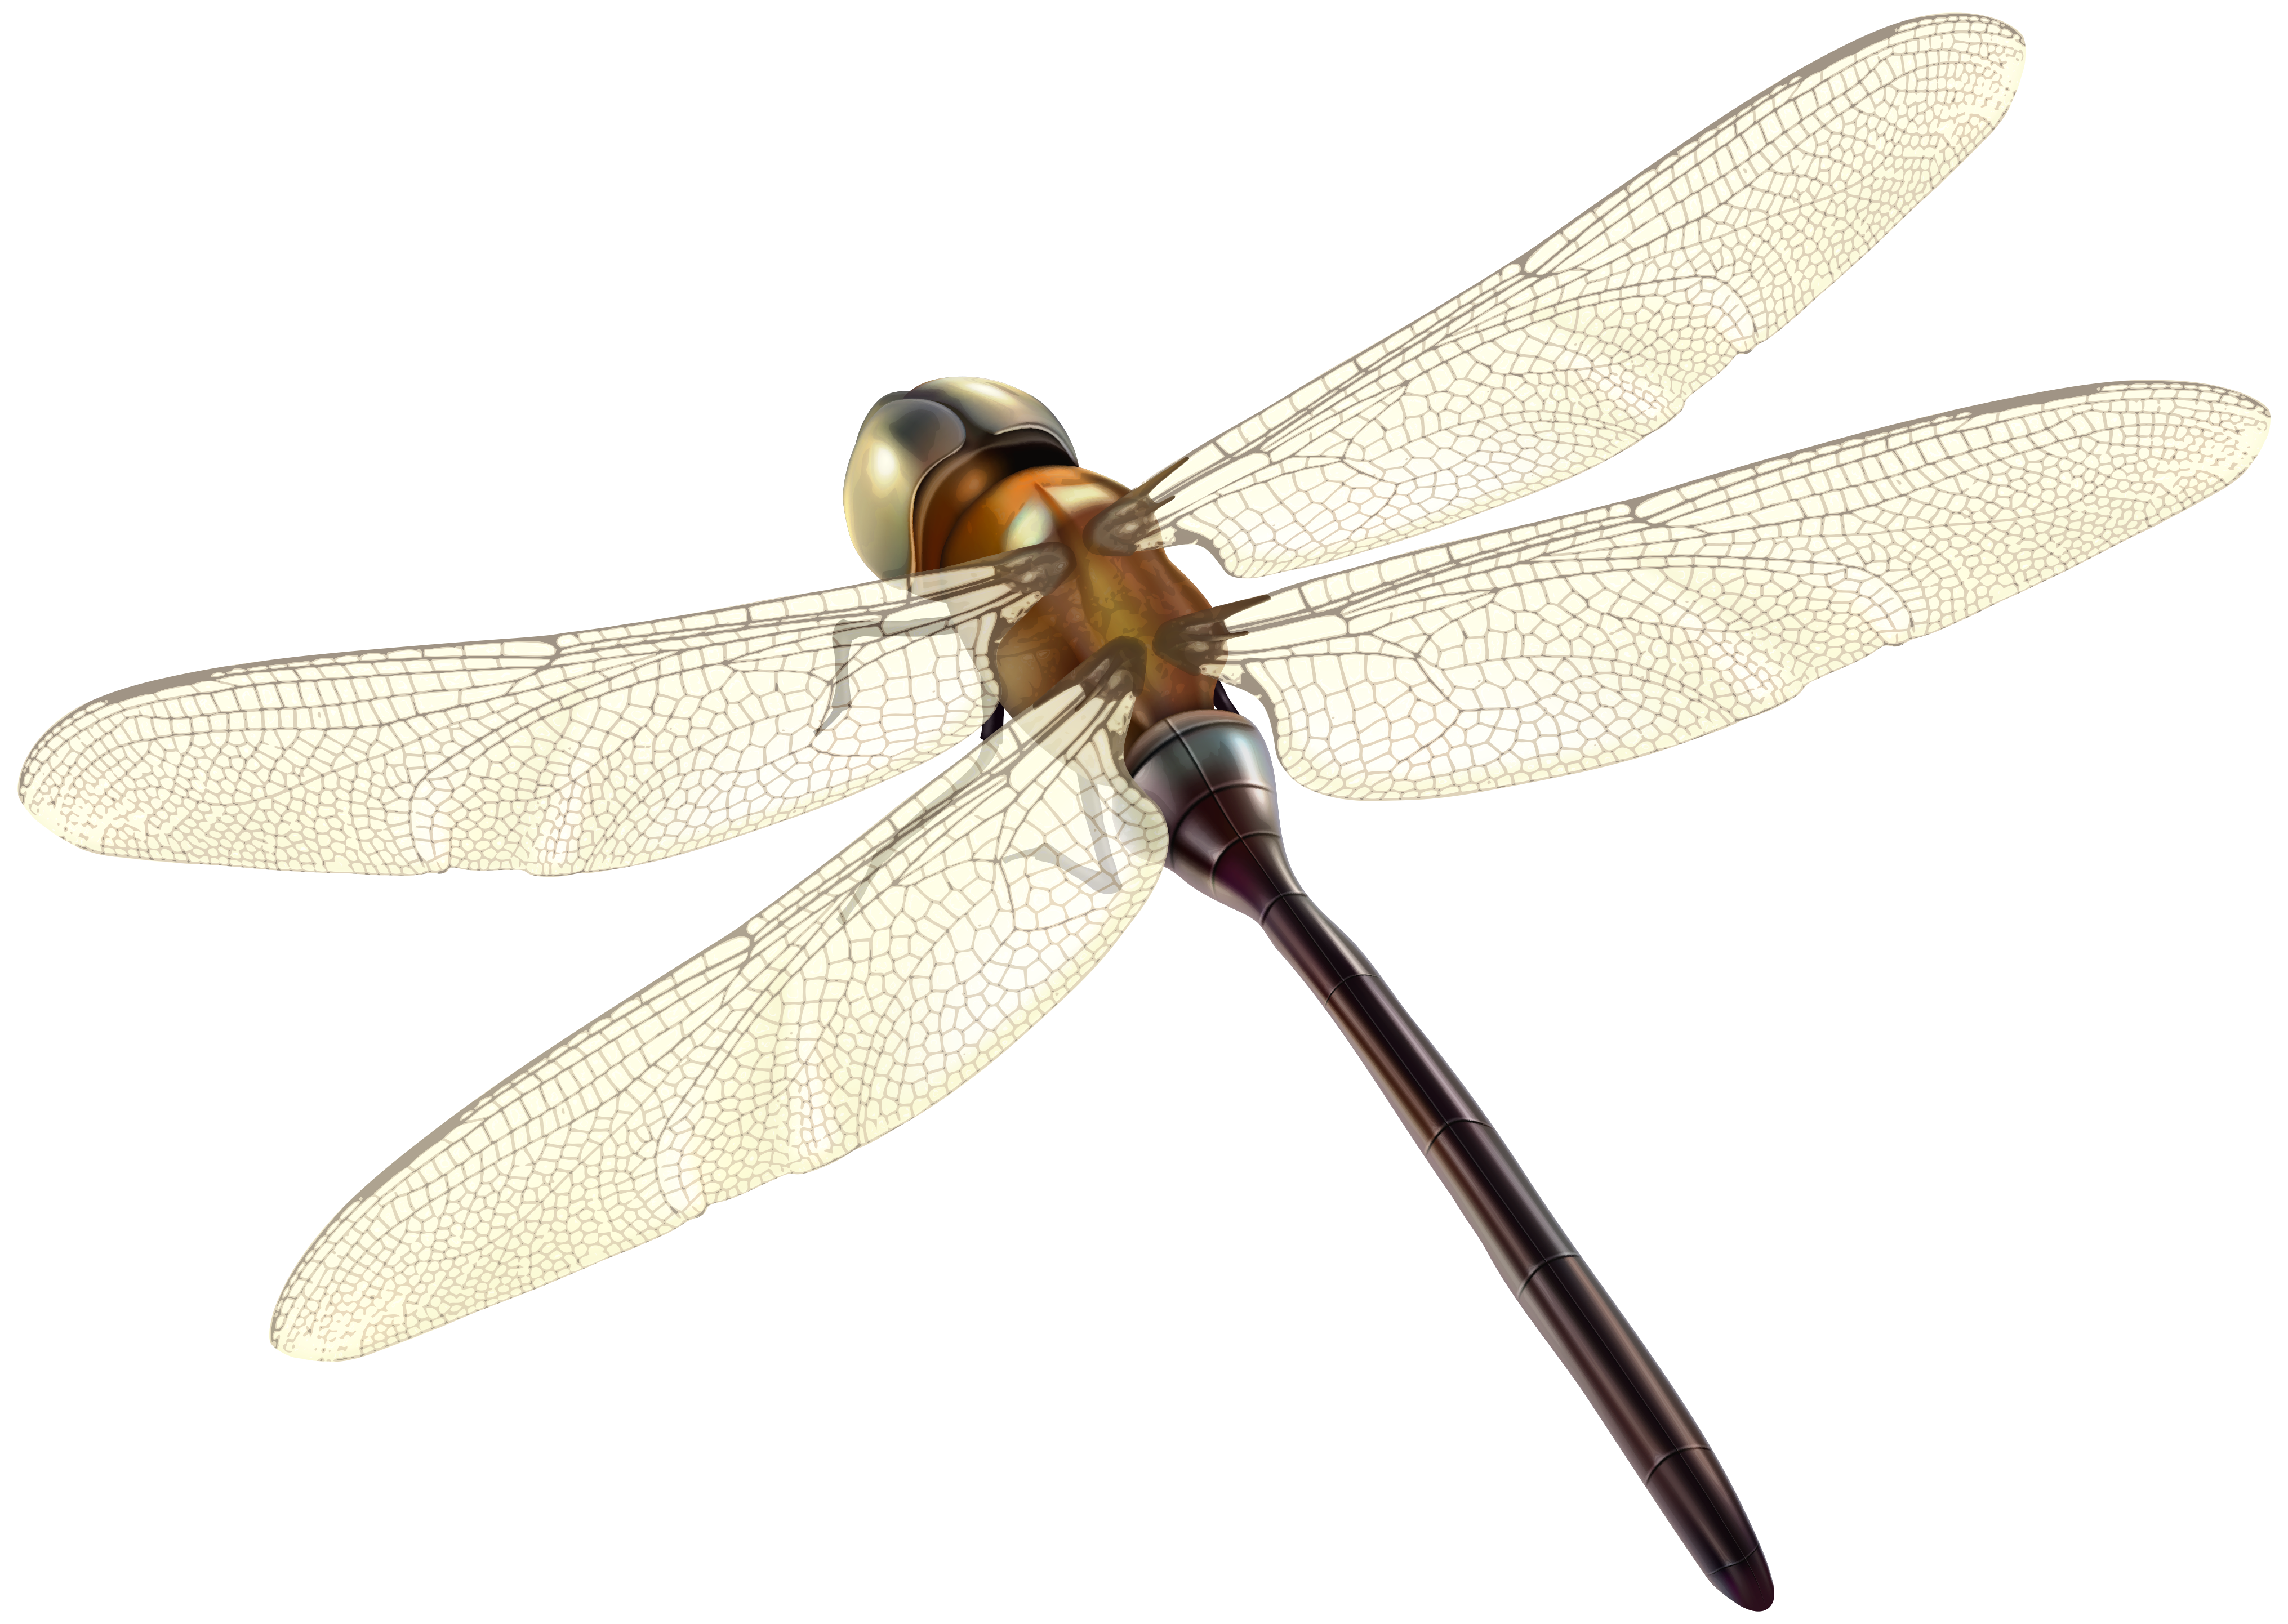 Dragonfly clipart insect. Png best web